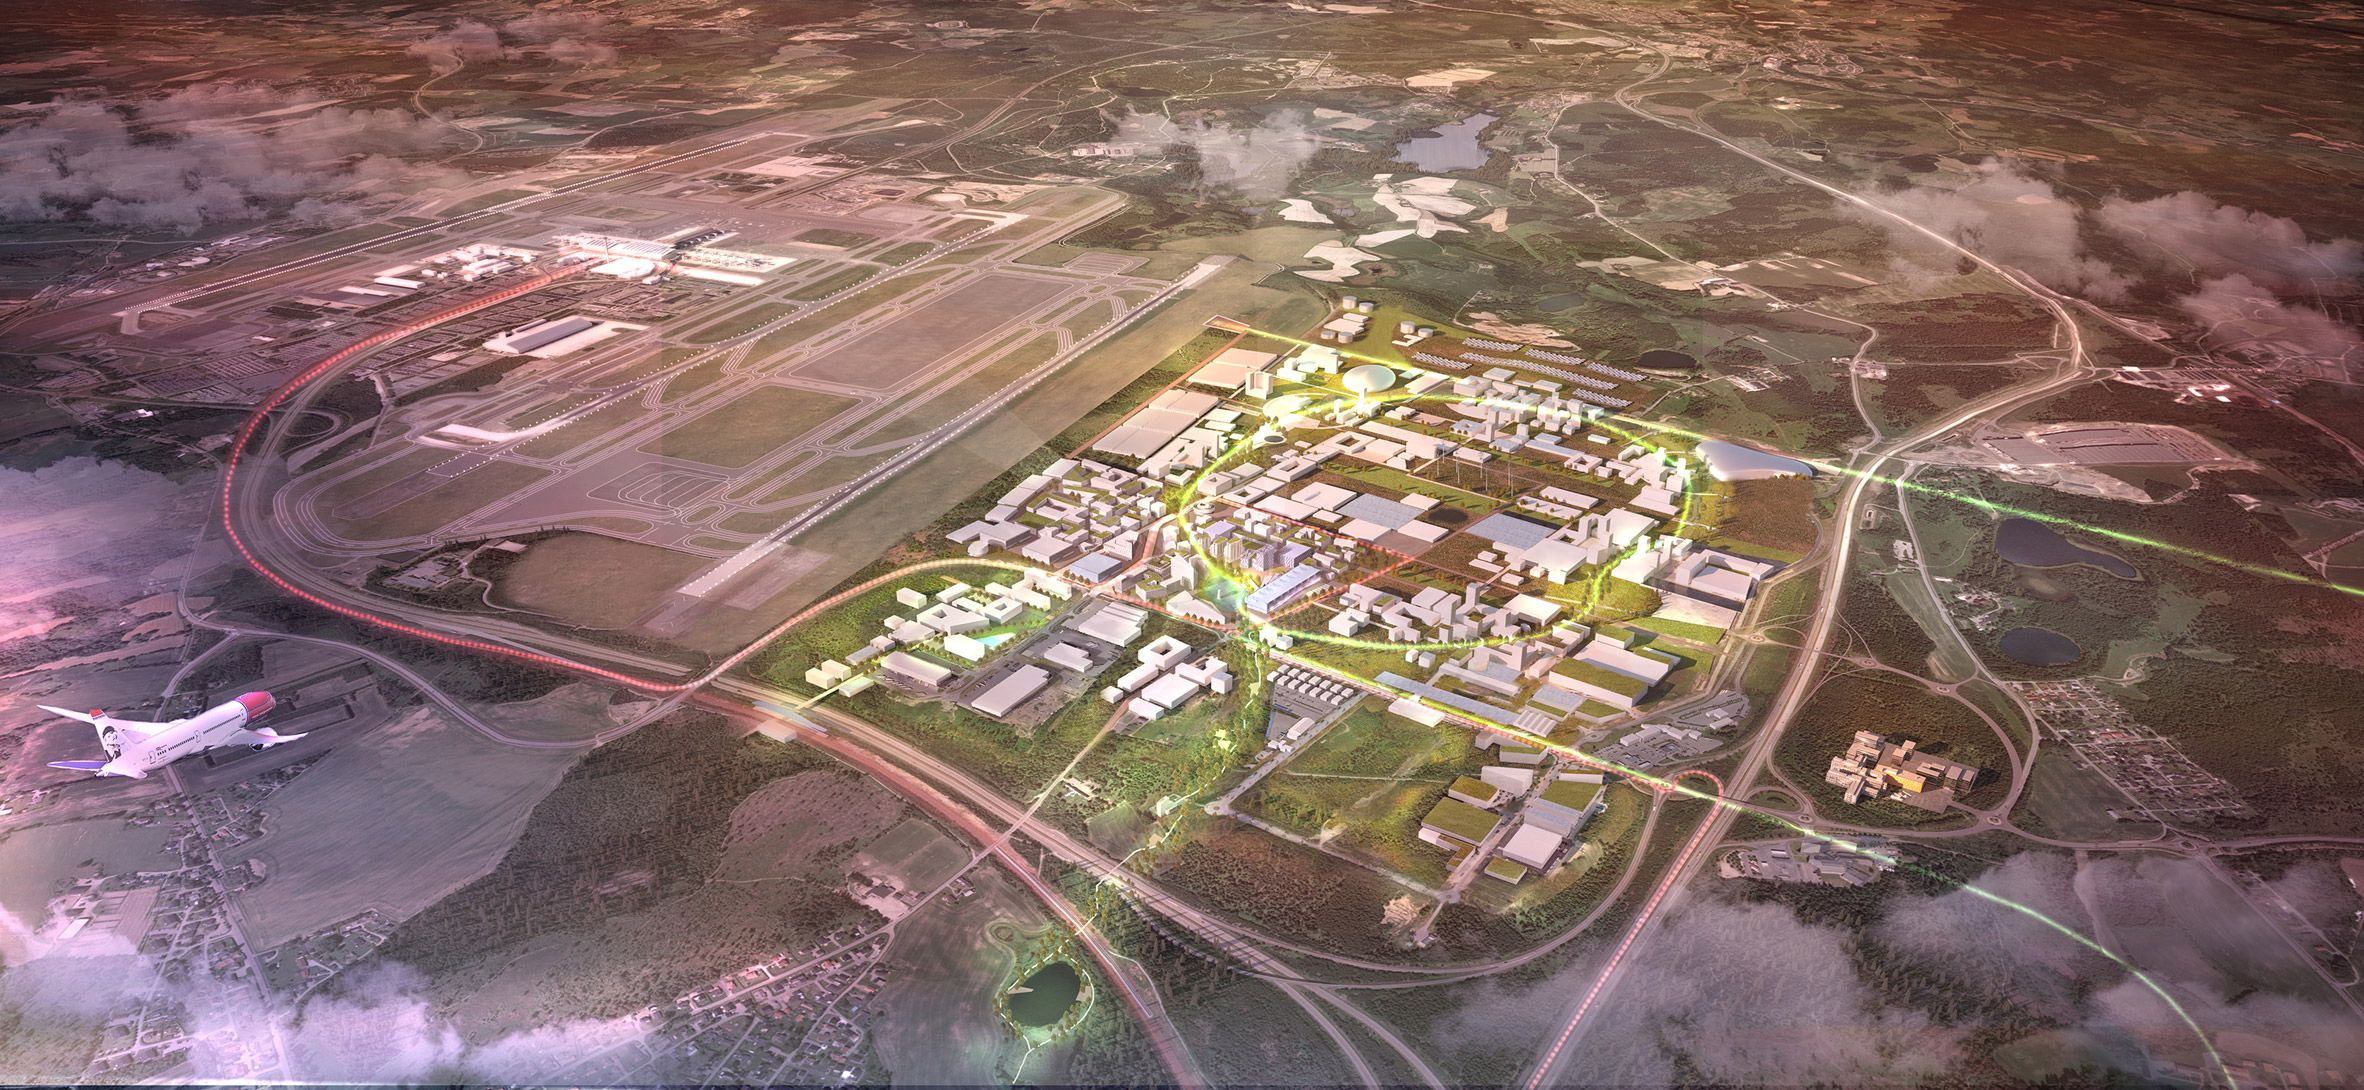 Haptic And Nordic To Build Sustainable City Of The Future At Oslo Airport Airport City Oslo Airport Sustainable City